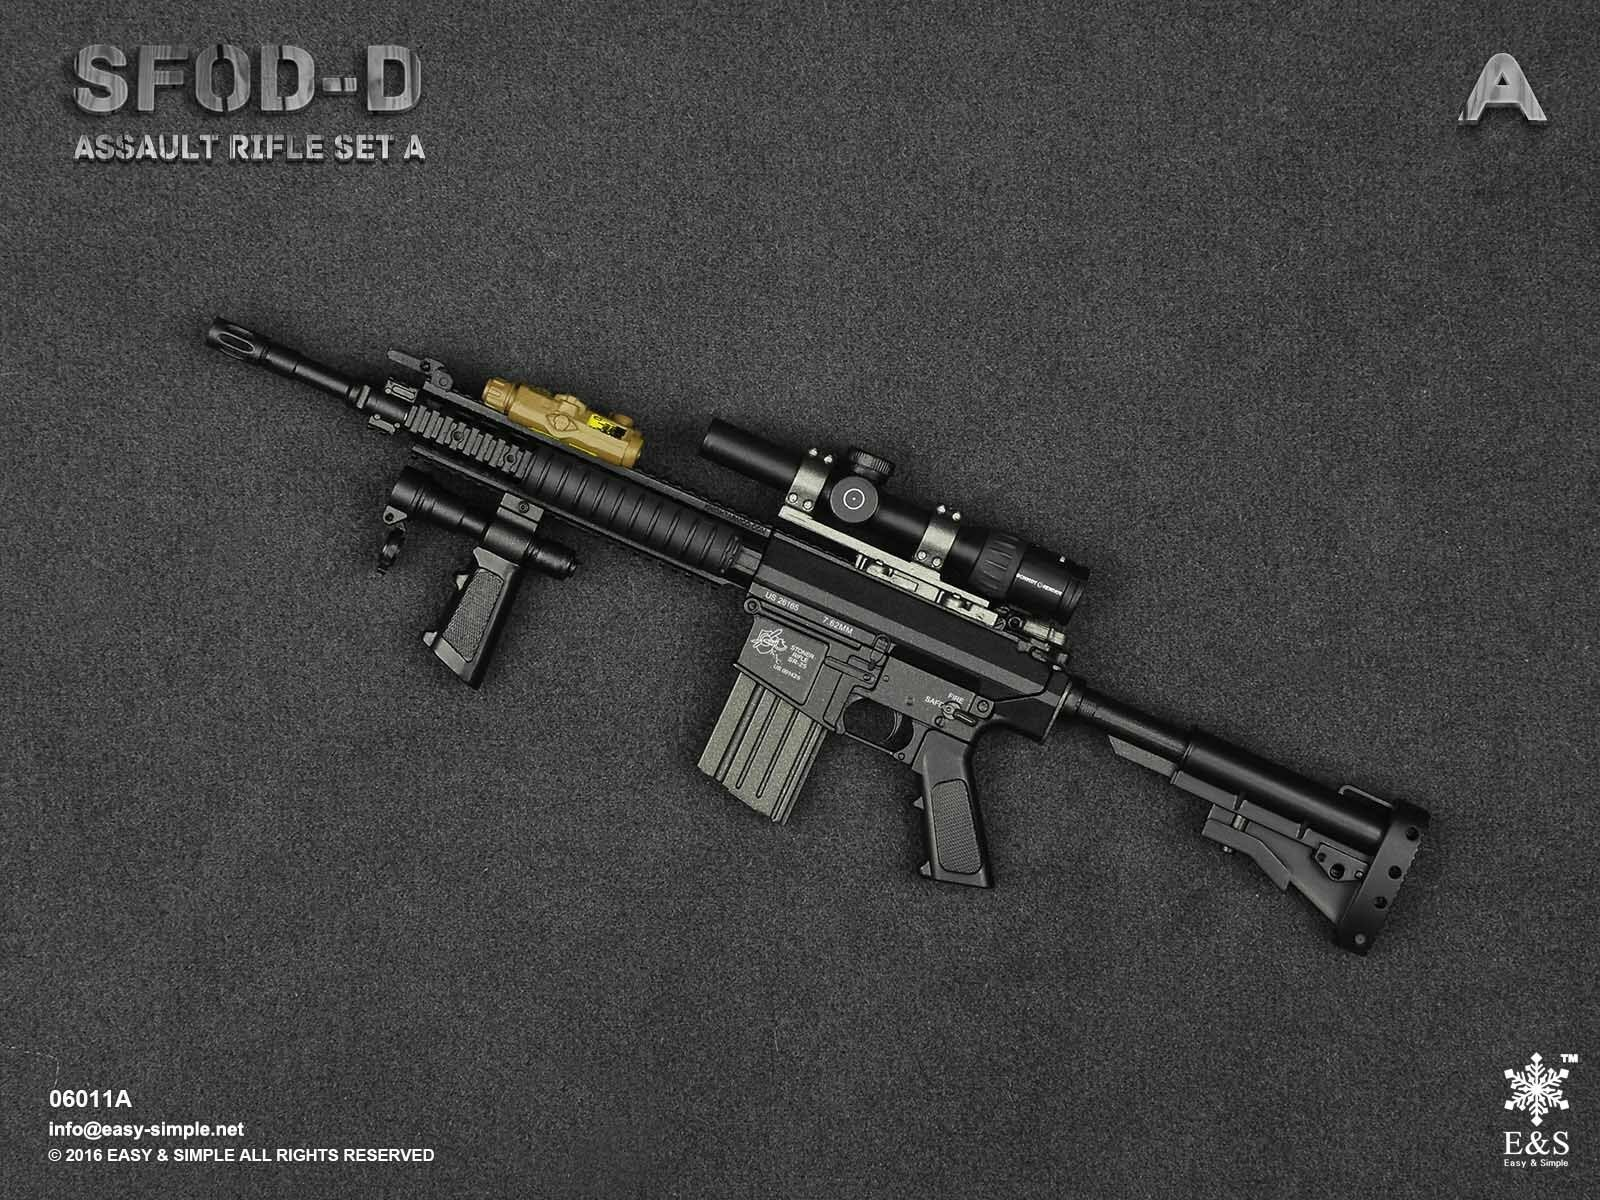 Easy & Simple 1/6 Scale 06011A SFOD-D Assault Rifle Set A